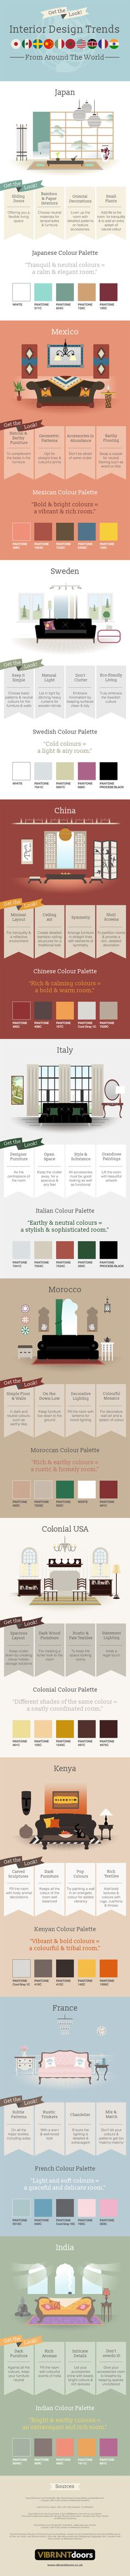 Looking for traditional interior design color palettes and orientations from around the world? This isn't really that trendy though...